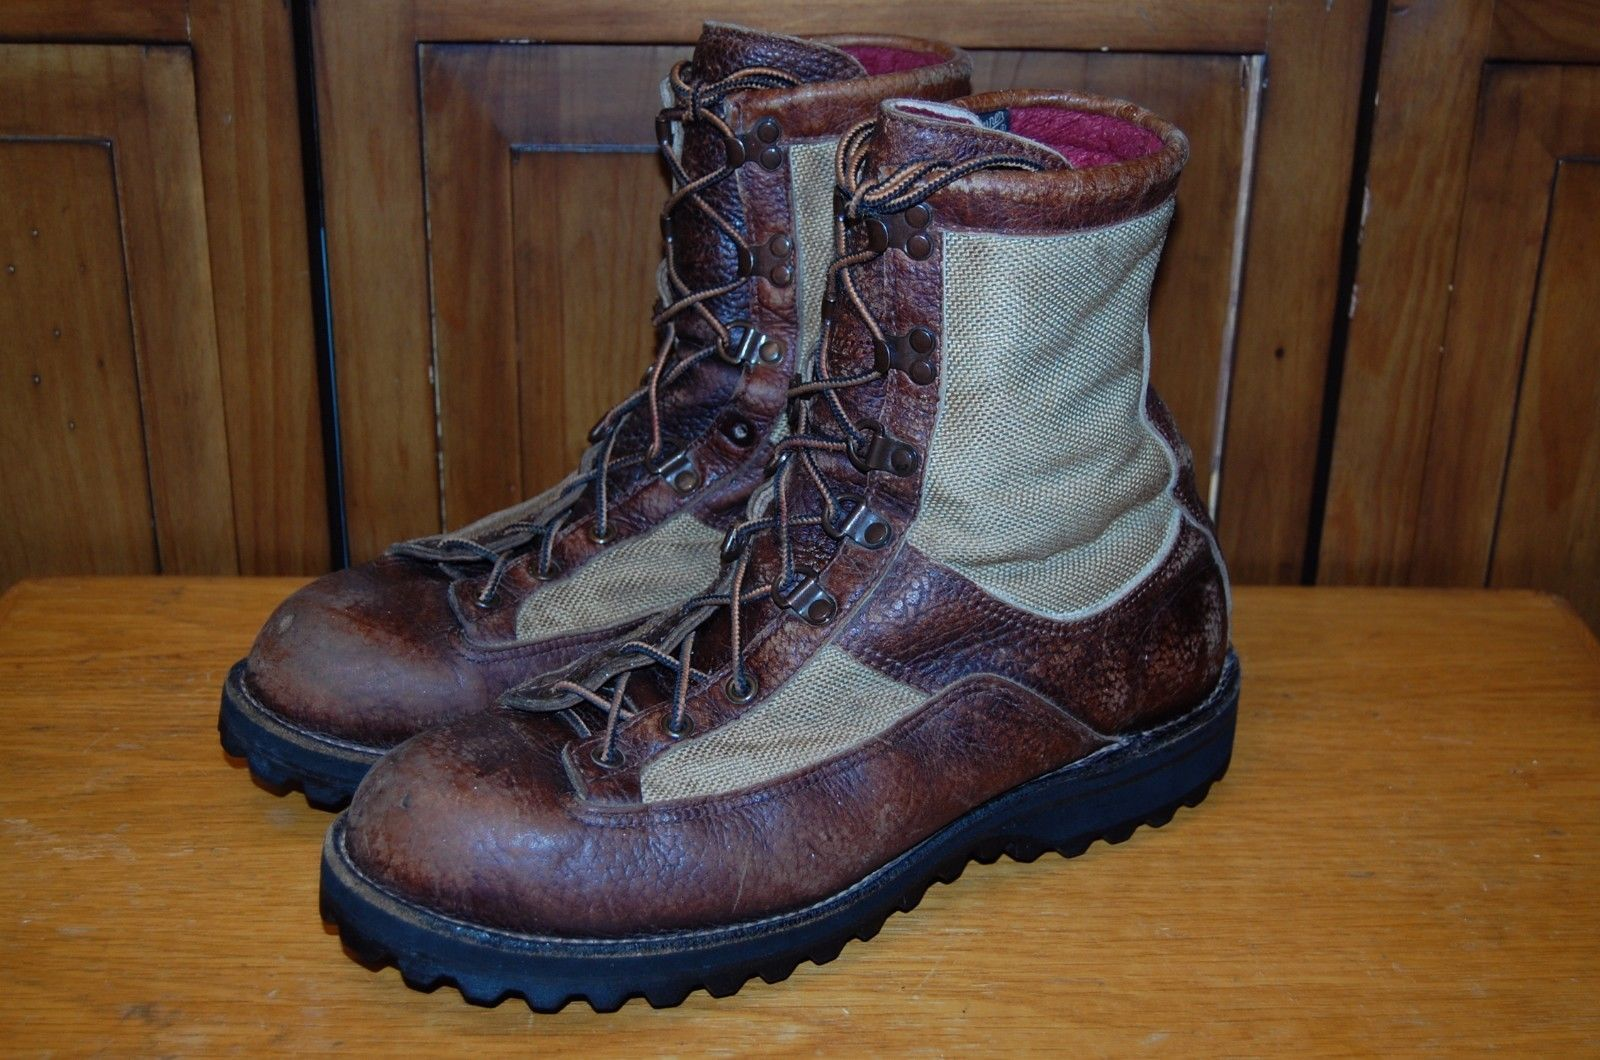 VINTAGE STYLE FIELD & FOREST BROWN HUNTING CORK SOLE BOOTS 12 EE MADE IN USA